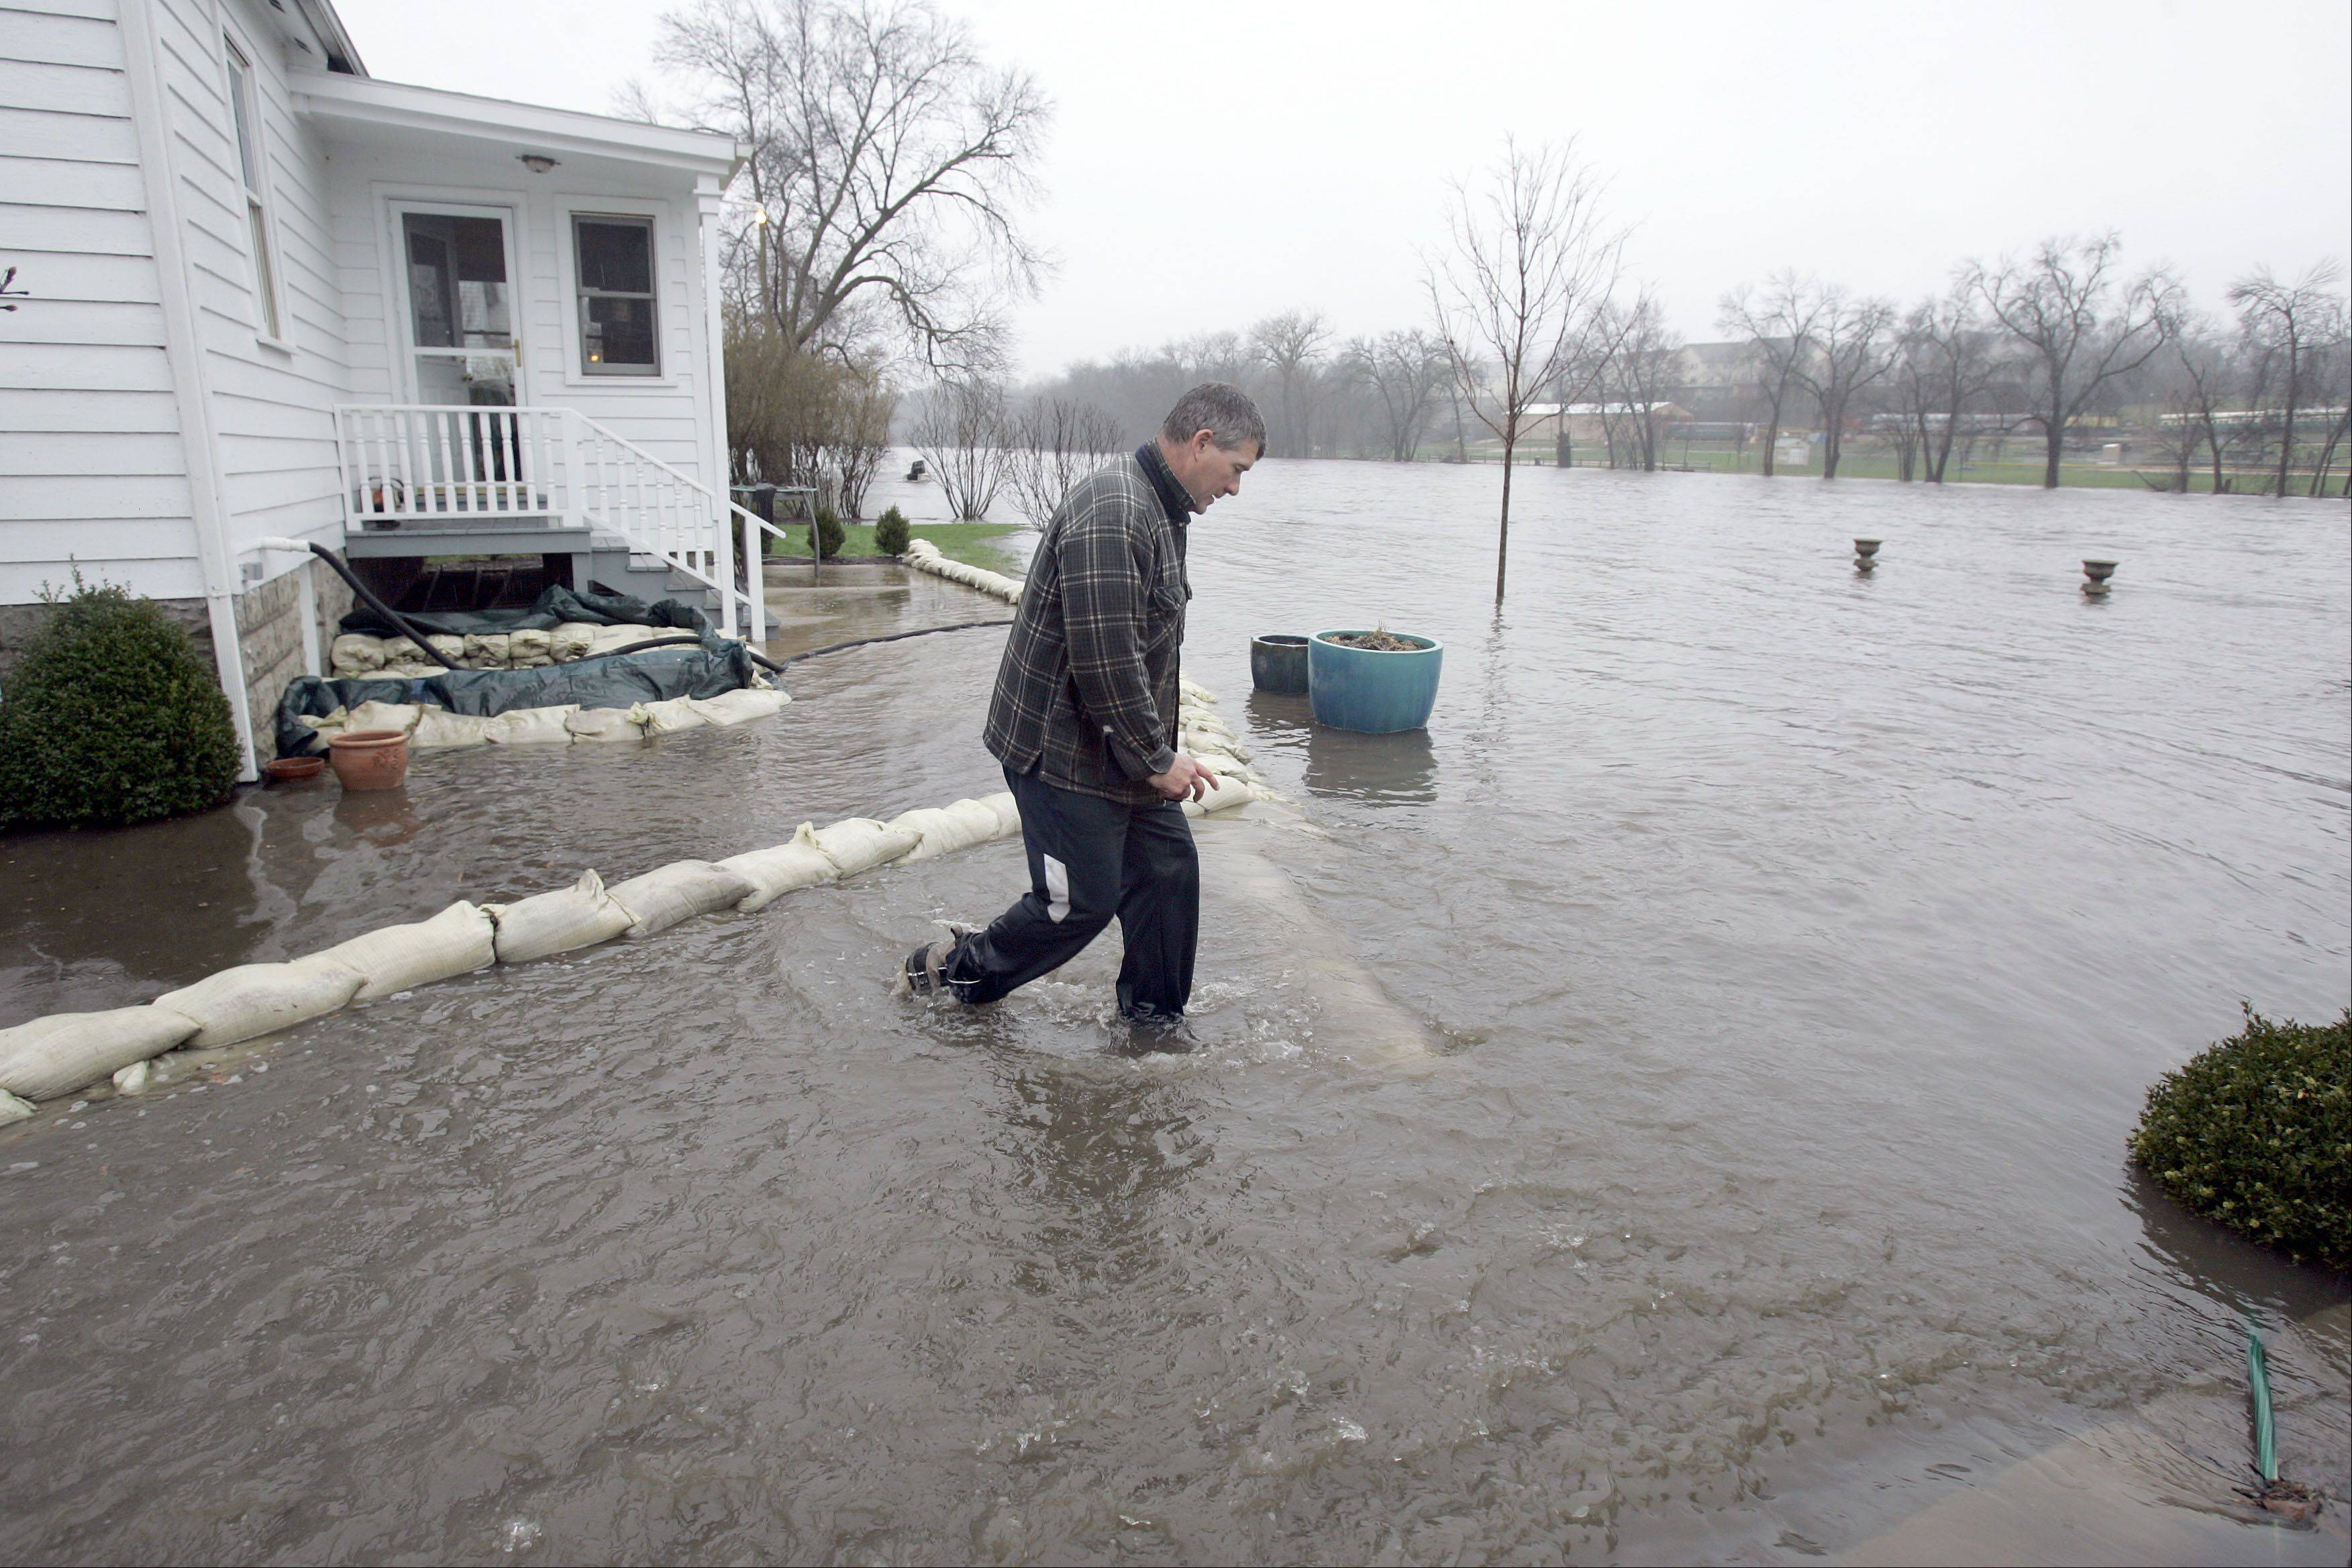 "Paul Gogo of South Elgin returns for another sandbag after flooding on the Fox River Thursday in South Elgin. ""This is just brutal, it's never been like this"" said Gogo who had been up since 3 a.m. working to protect his home on South River Street along the Fox River."